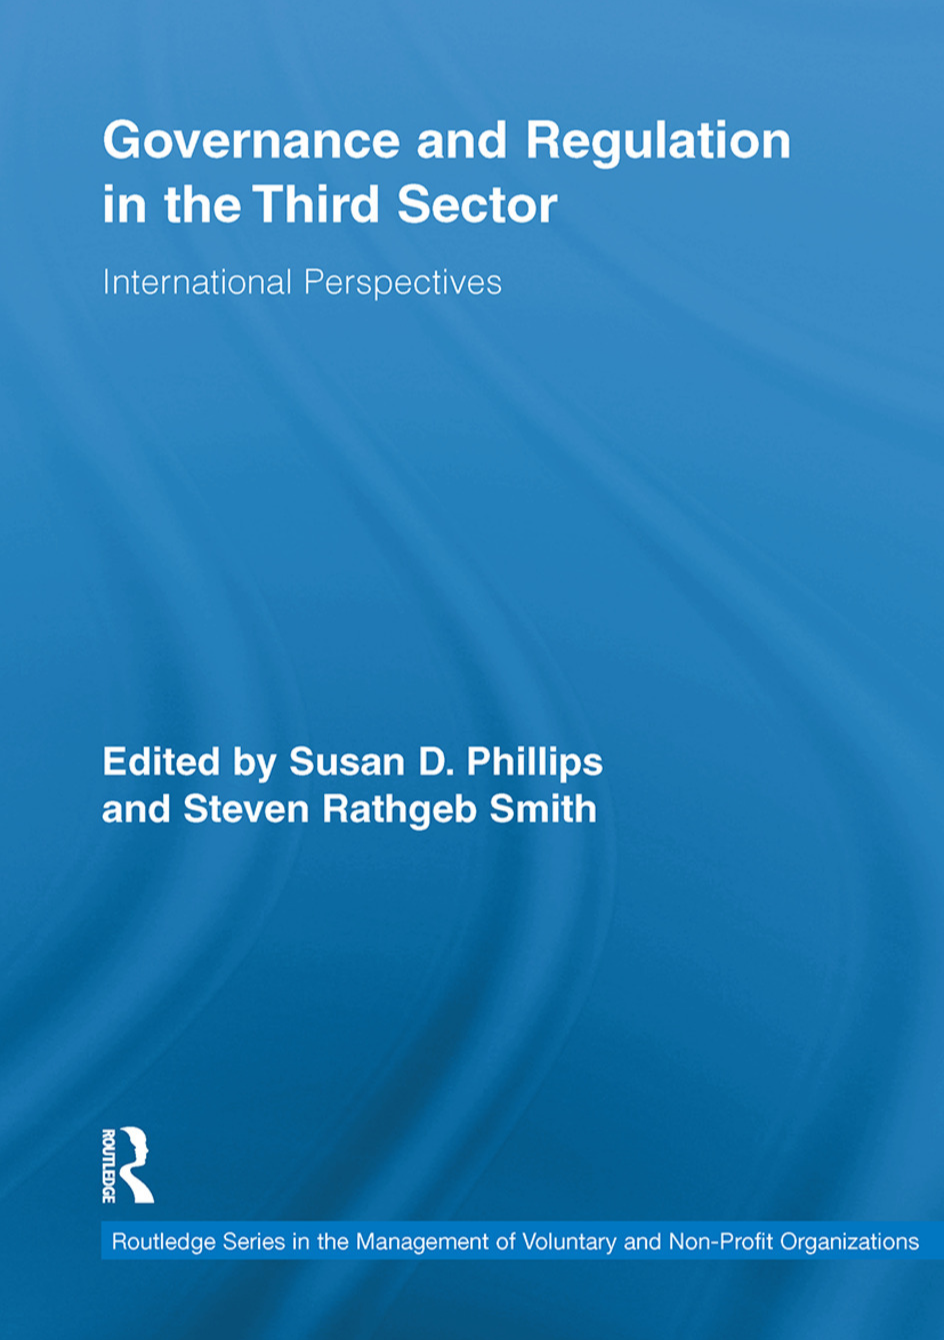 Governance and Regulation in the Third Sector: International Perspectives.